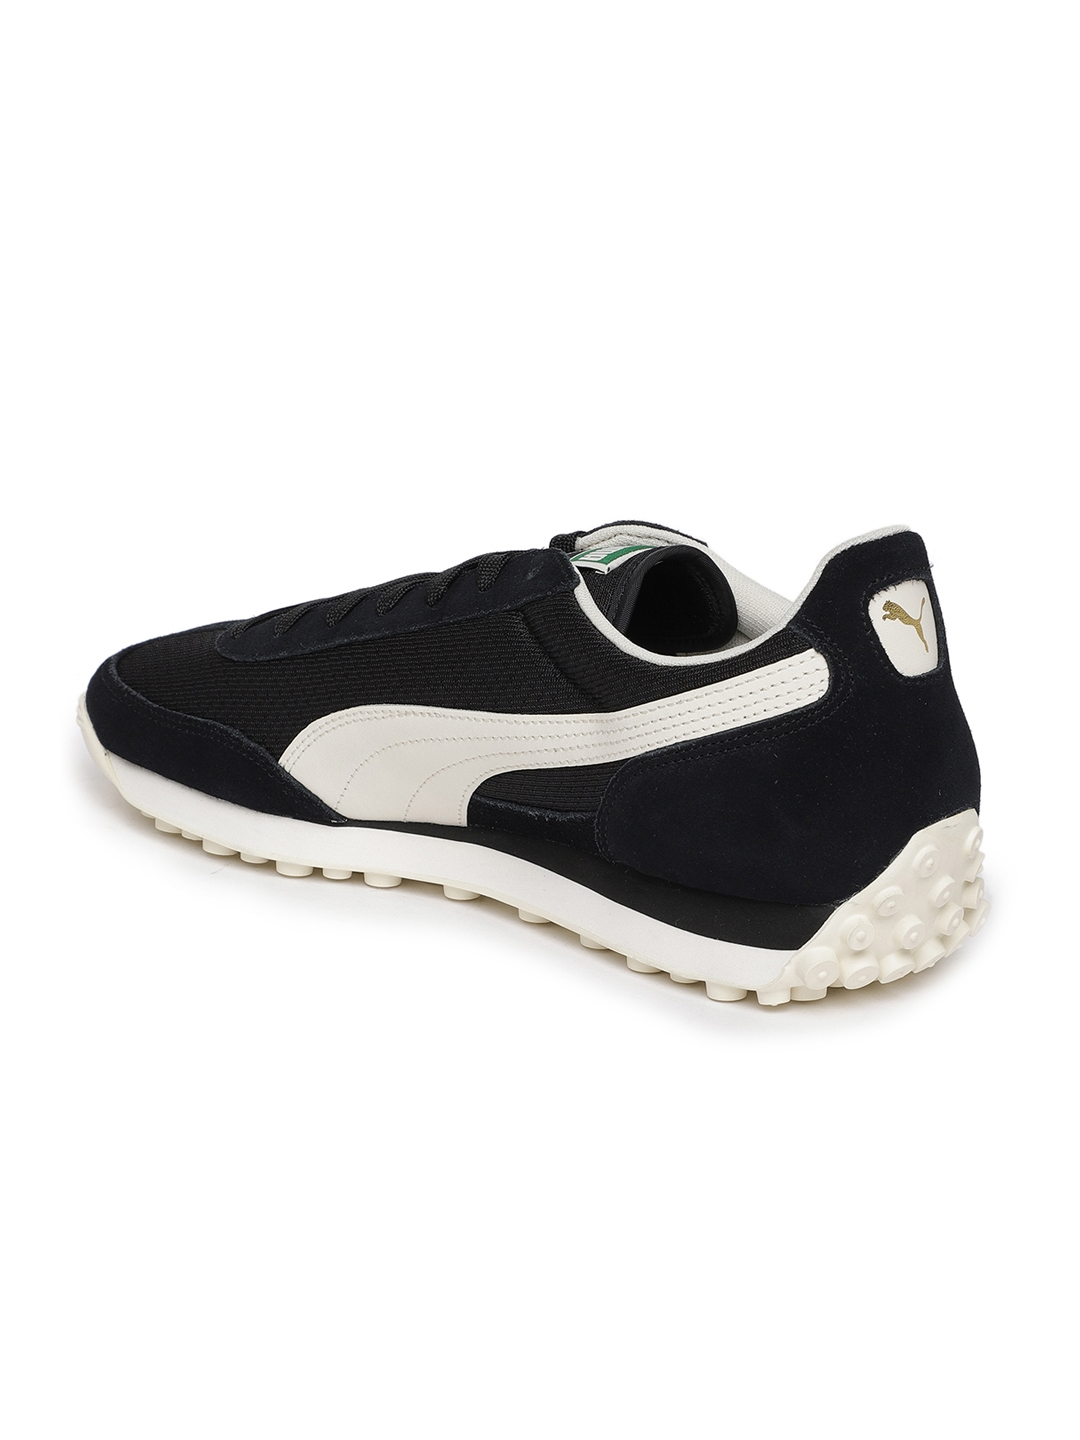 Buy Puma Men Black Easy Rider Classic Sneakers - Casual Shoes for ... 86b09ba2c